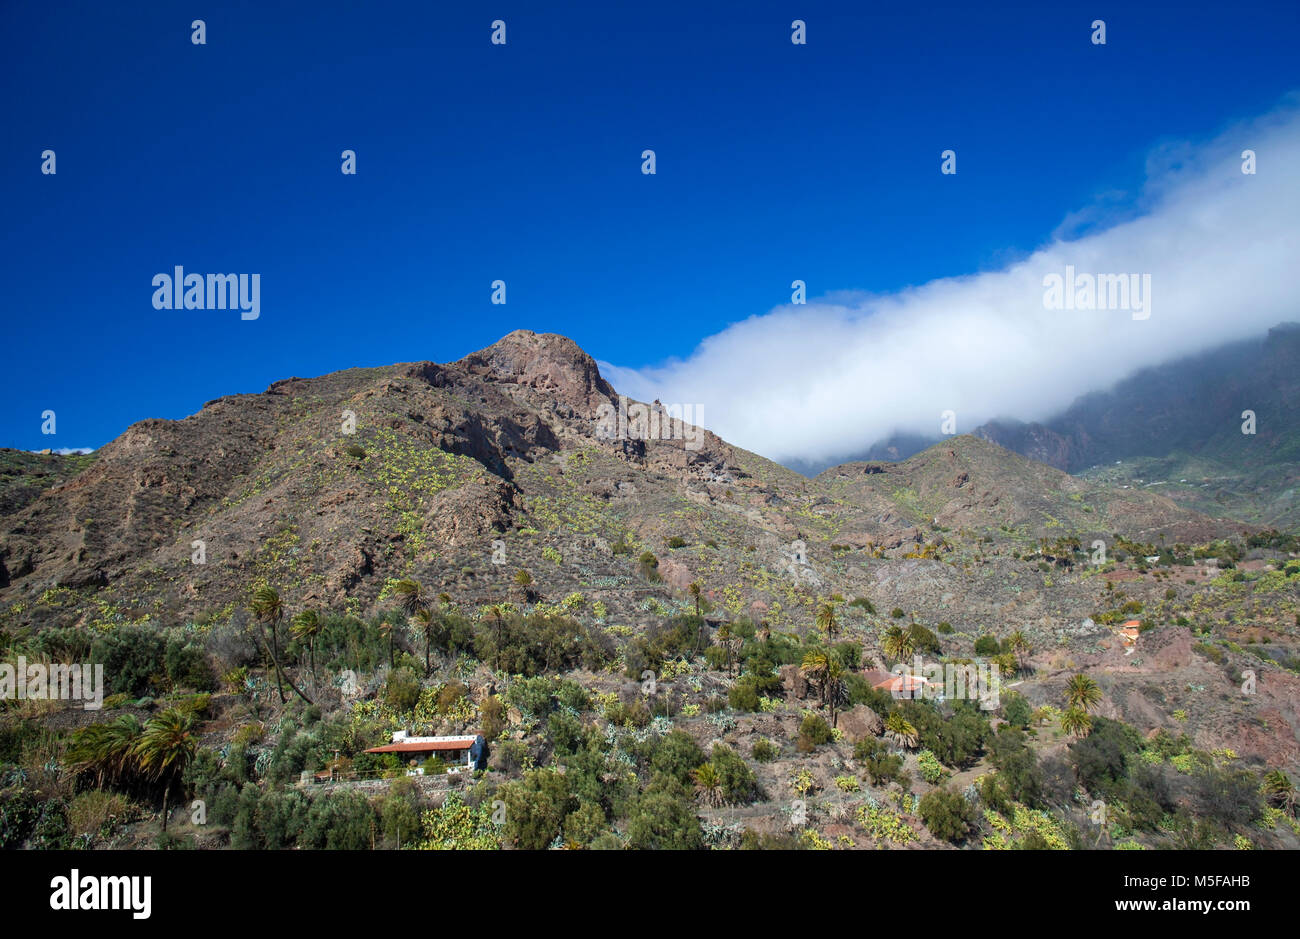 Gran Canaria, February 2018, one of the largest aboriginal cave villages on Canary Islands, Montana de los Huesos - Stock Image